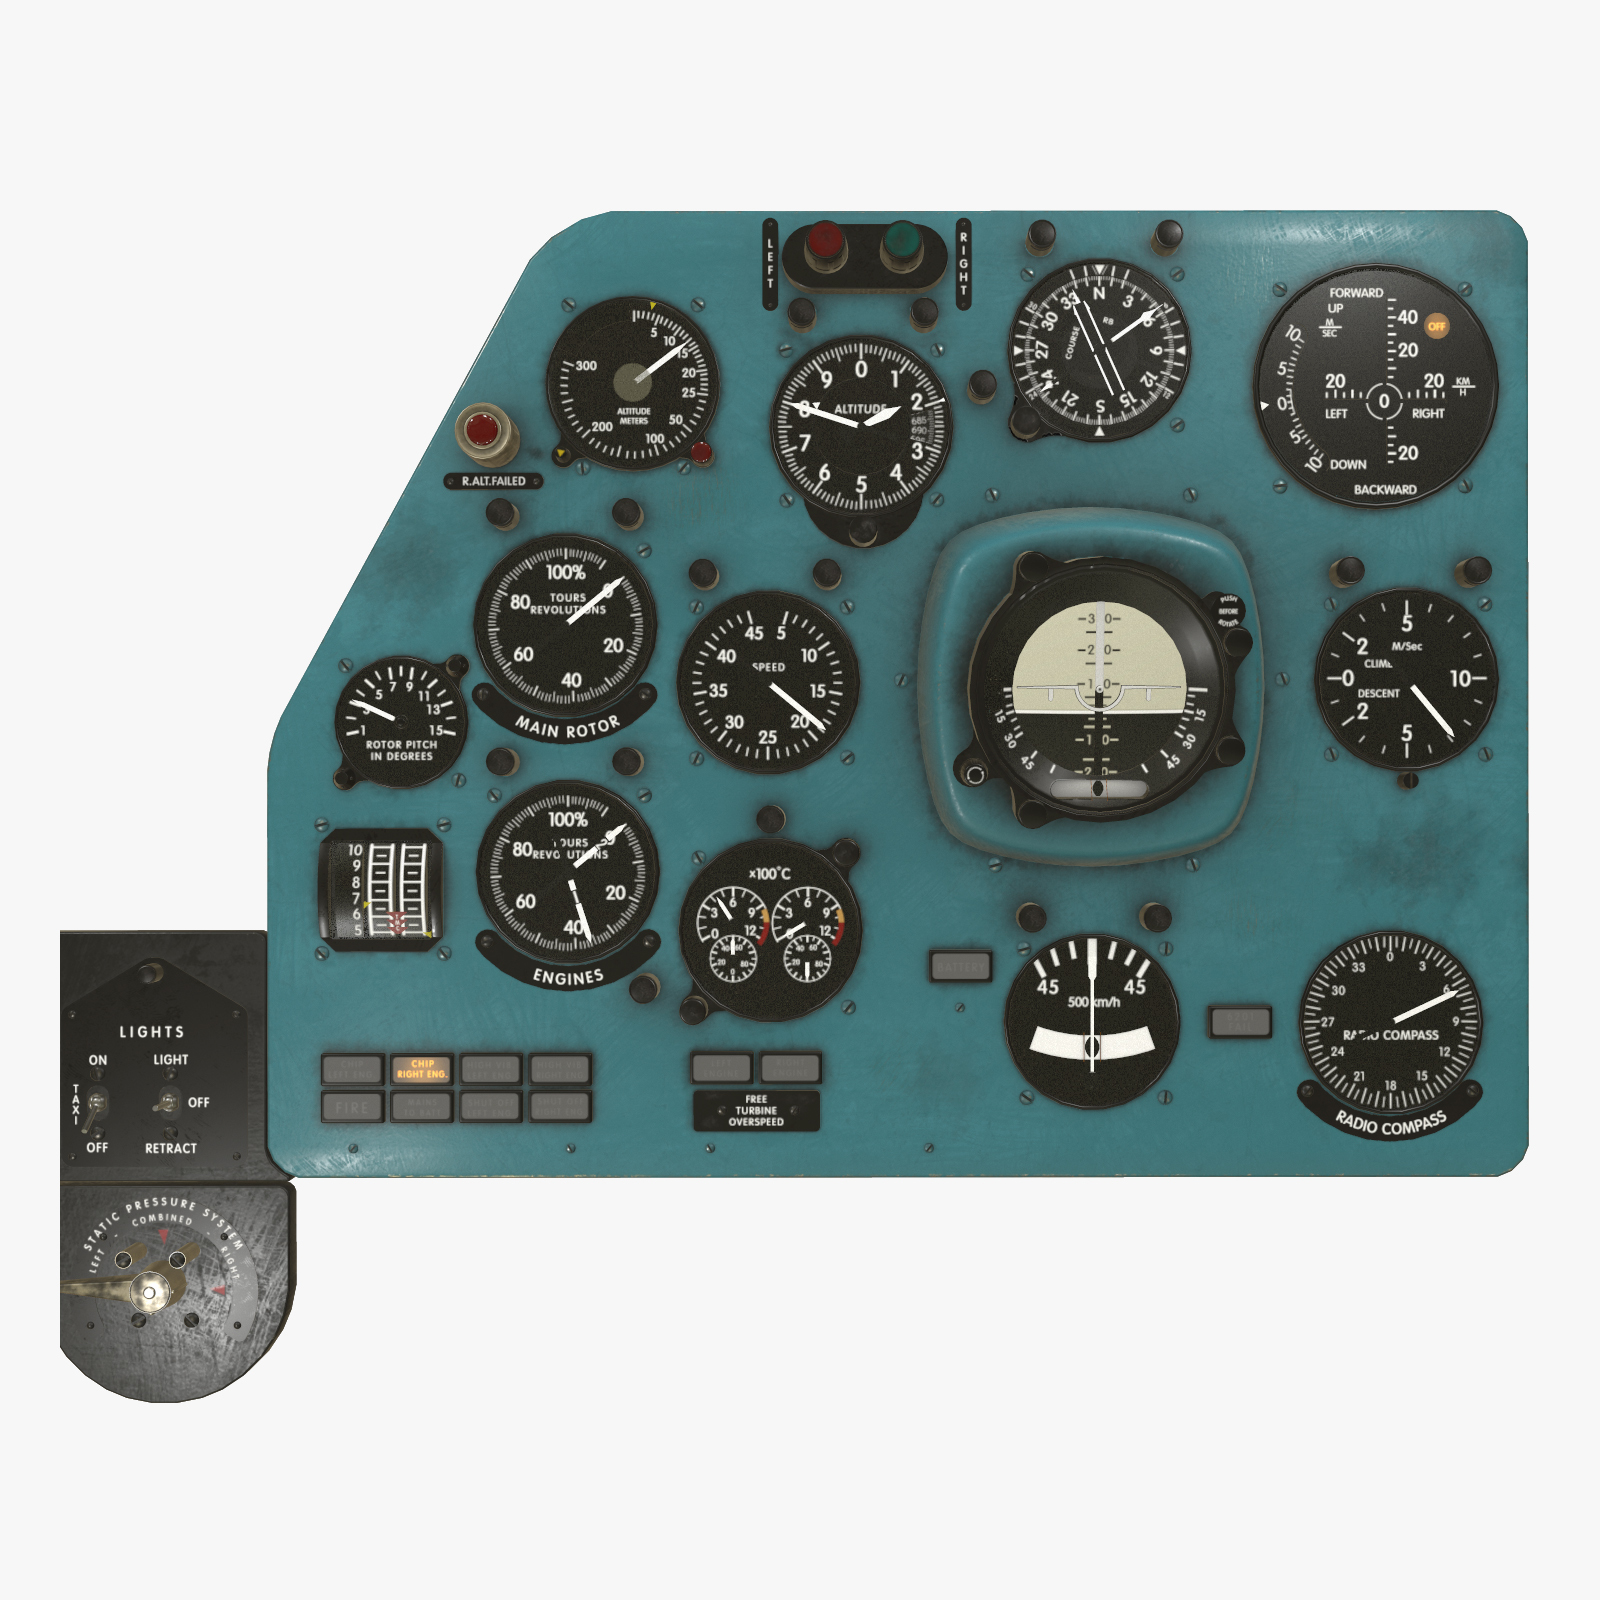 Mi-8MT Mi-17MT Left Panels Board English - Extended License by pukamakara